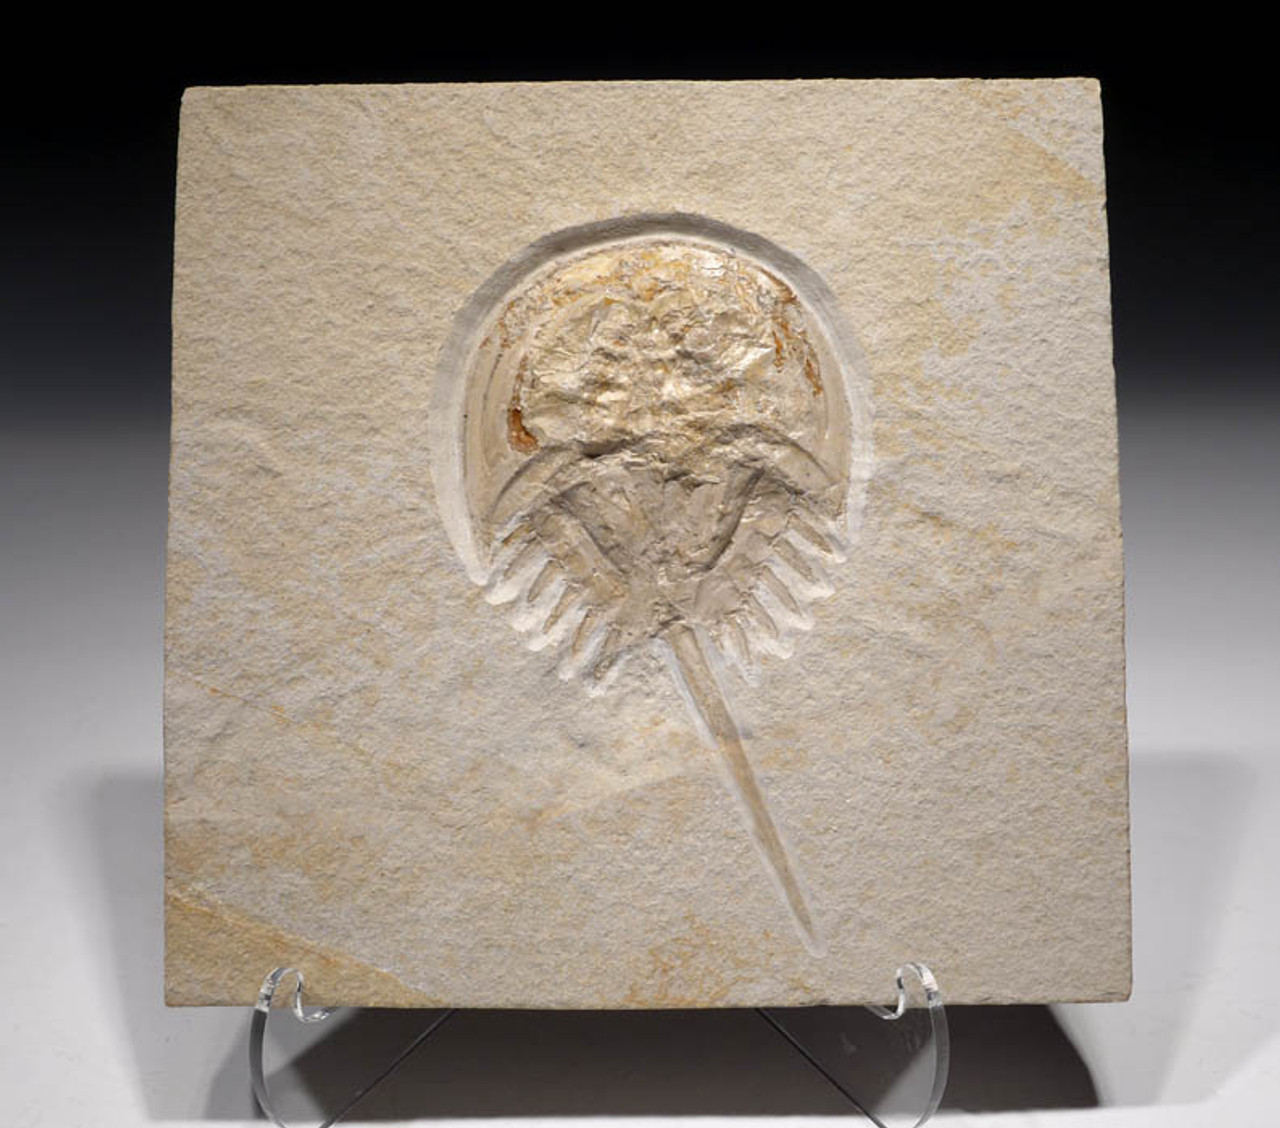 CRUS032 - FINEST GRADE FOSSIL HORSESHOE CRAB FROM THE JURASSIC OF SOLNHOFEN GERMANY